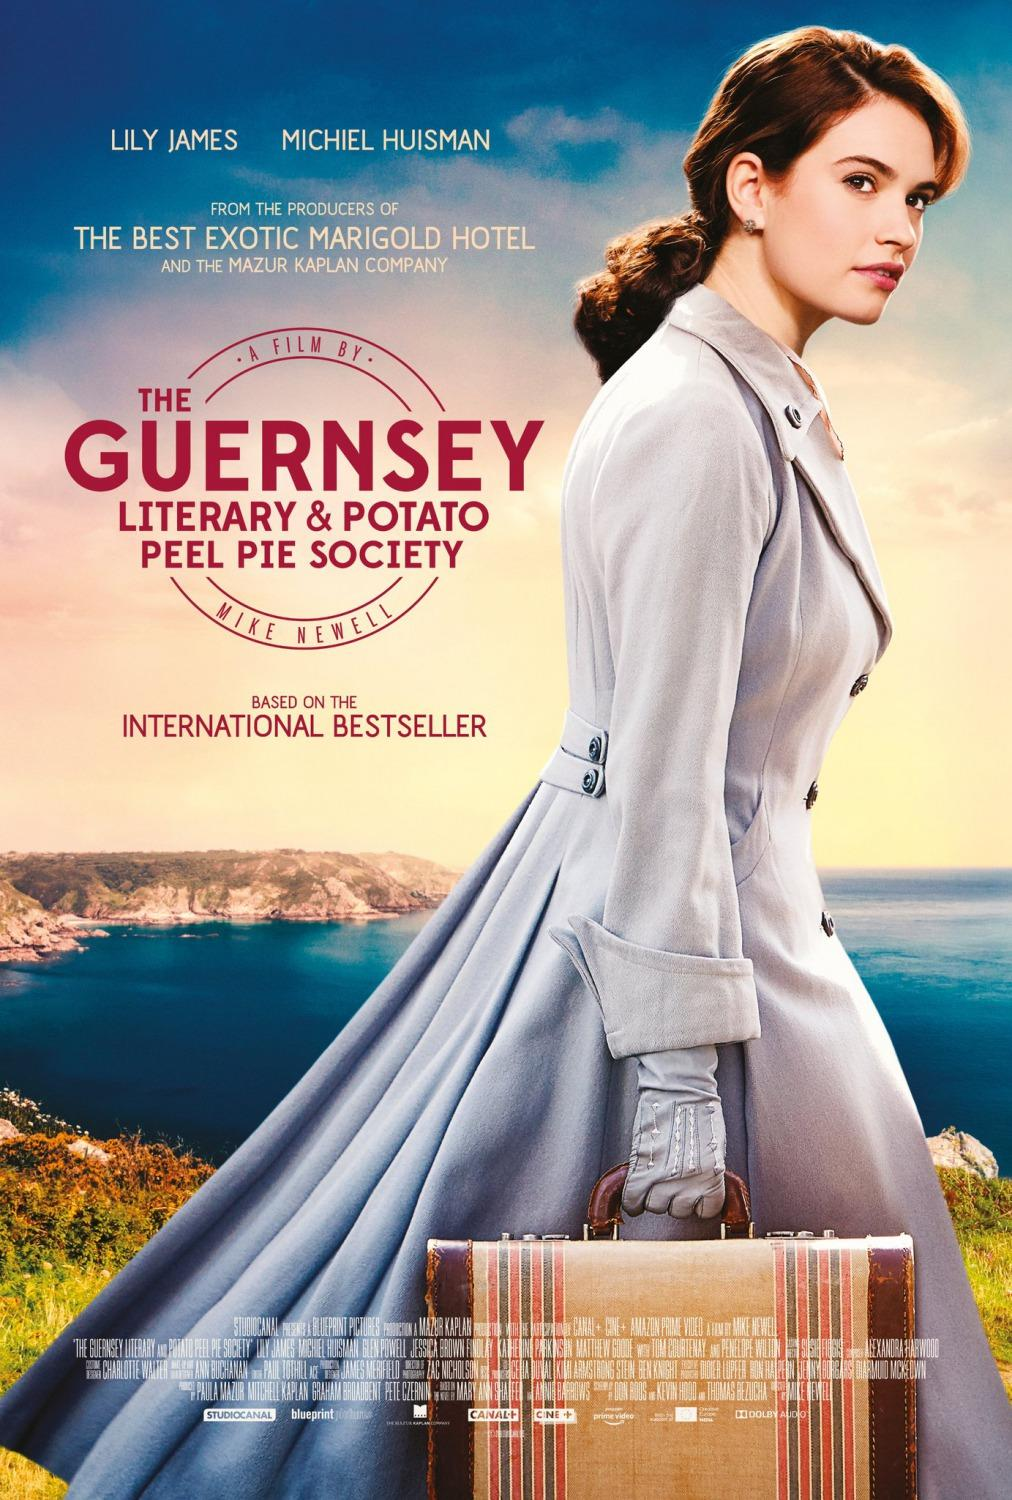 The%20Guernsey%20Literary%20and%20Potato%20Peel%20Pie%20Society%202018.1 1 دانلود فیلم The Guernsey Literary and Potato Peel Pie Society 2018